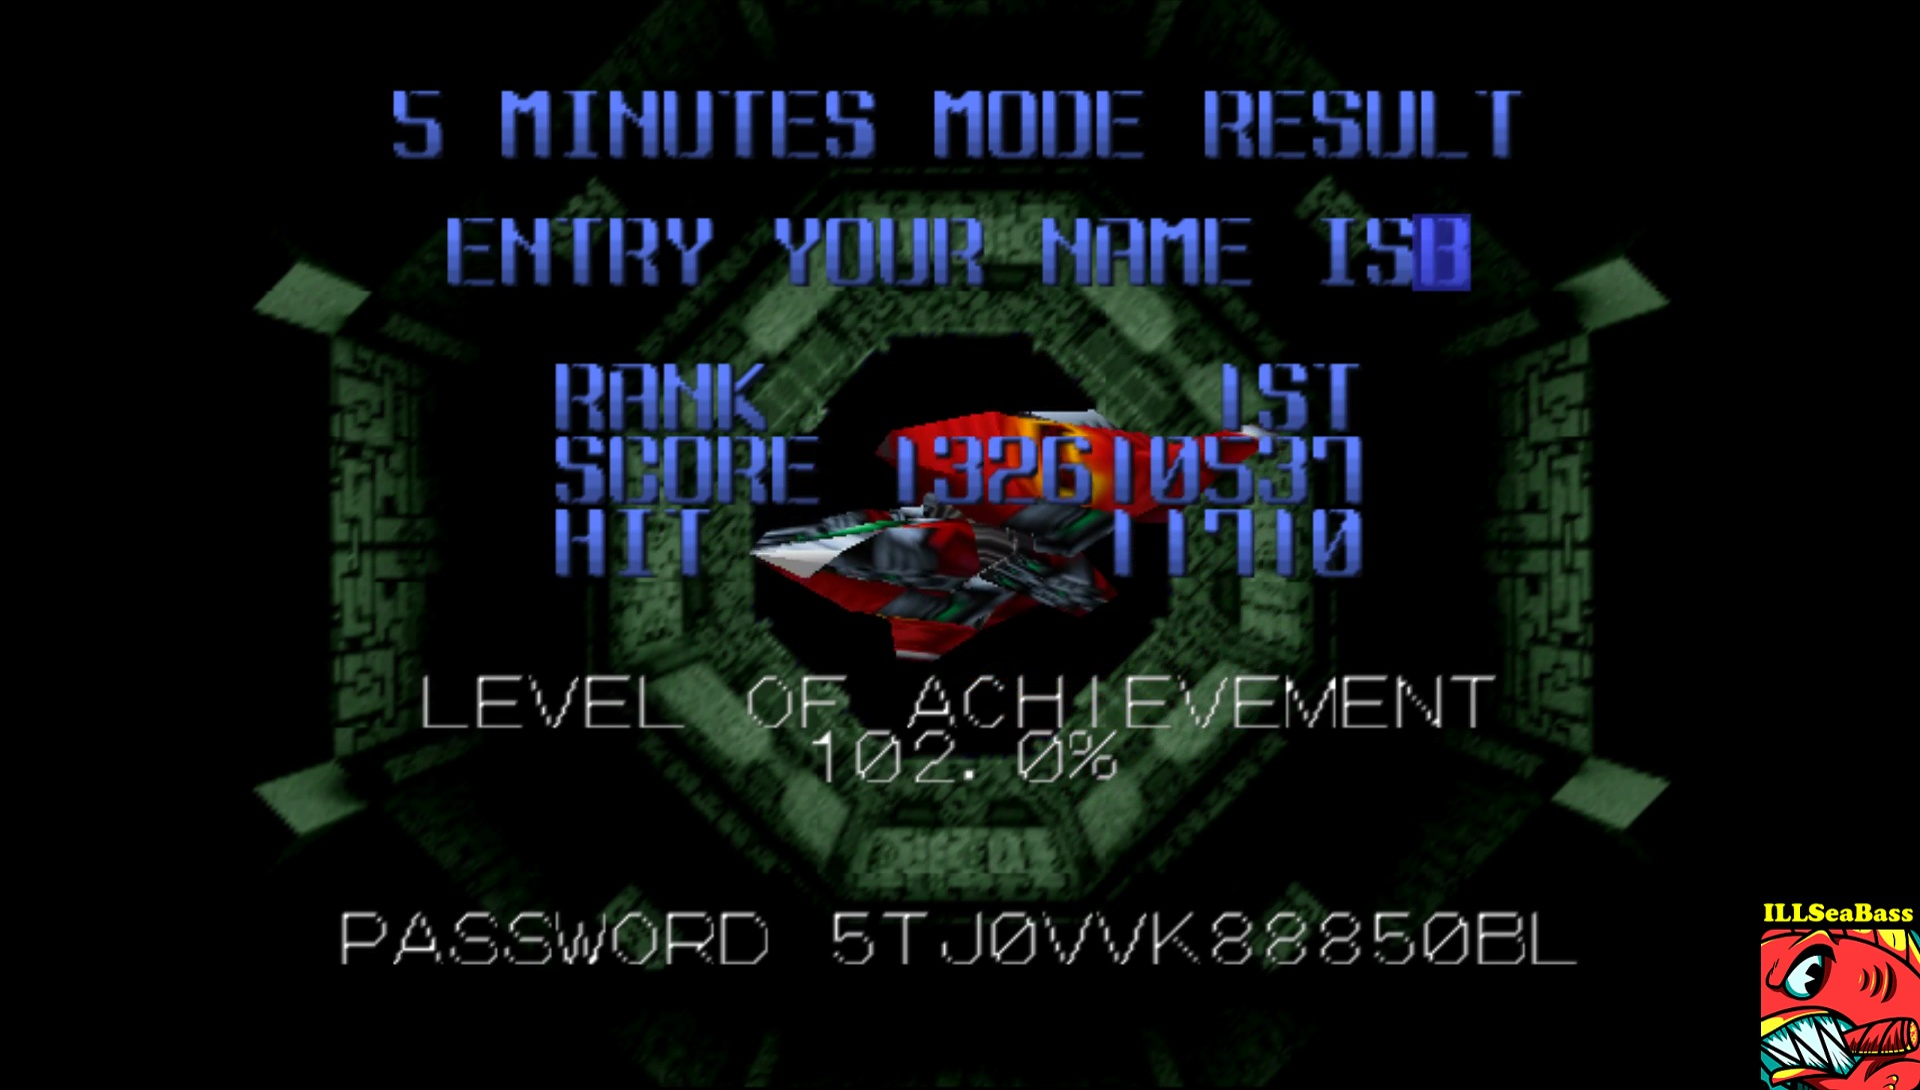 ILLSeaBass: Star Soldier Vanishing Earth: 5 Minutes Mode [Regular] (N64 Emulated) 132,610,537 points on 2017-06-05 12:10:51